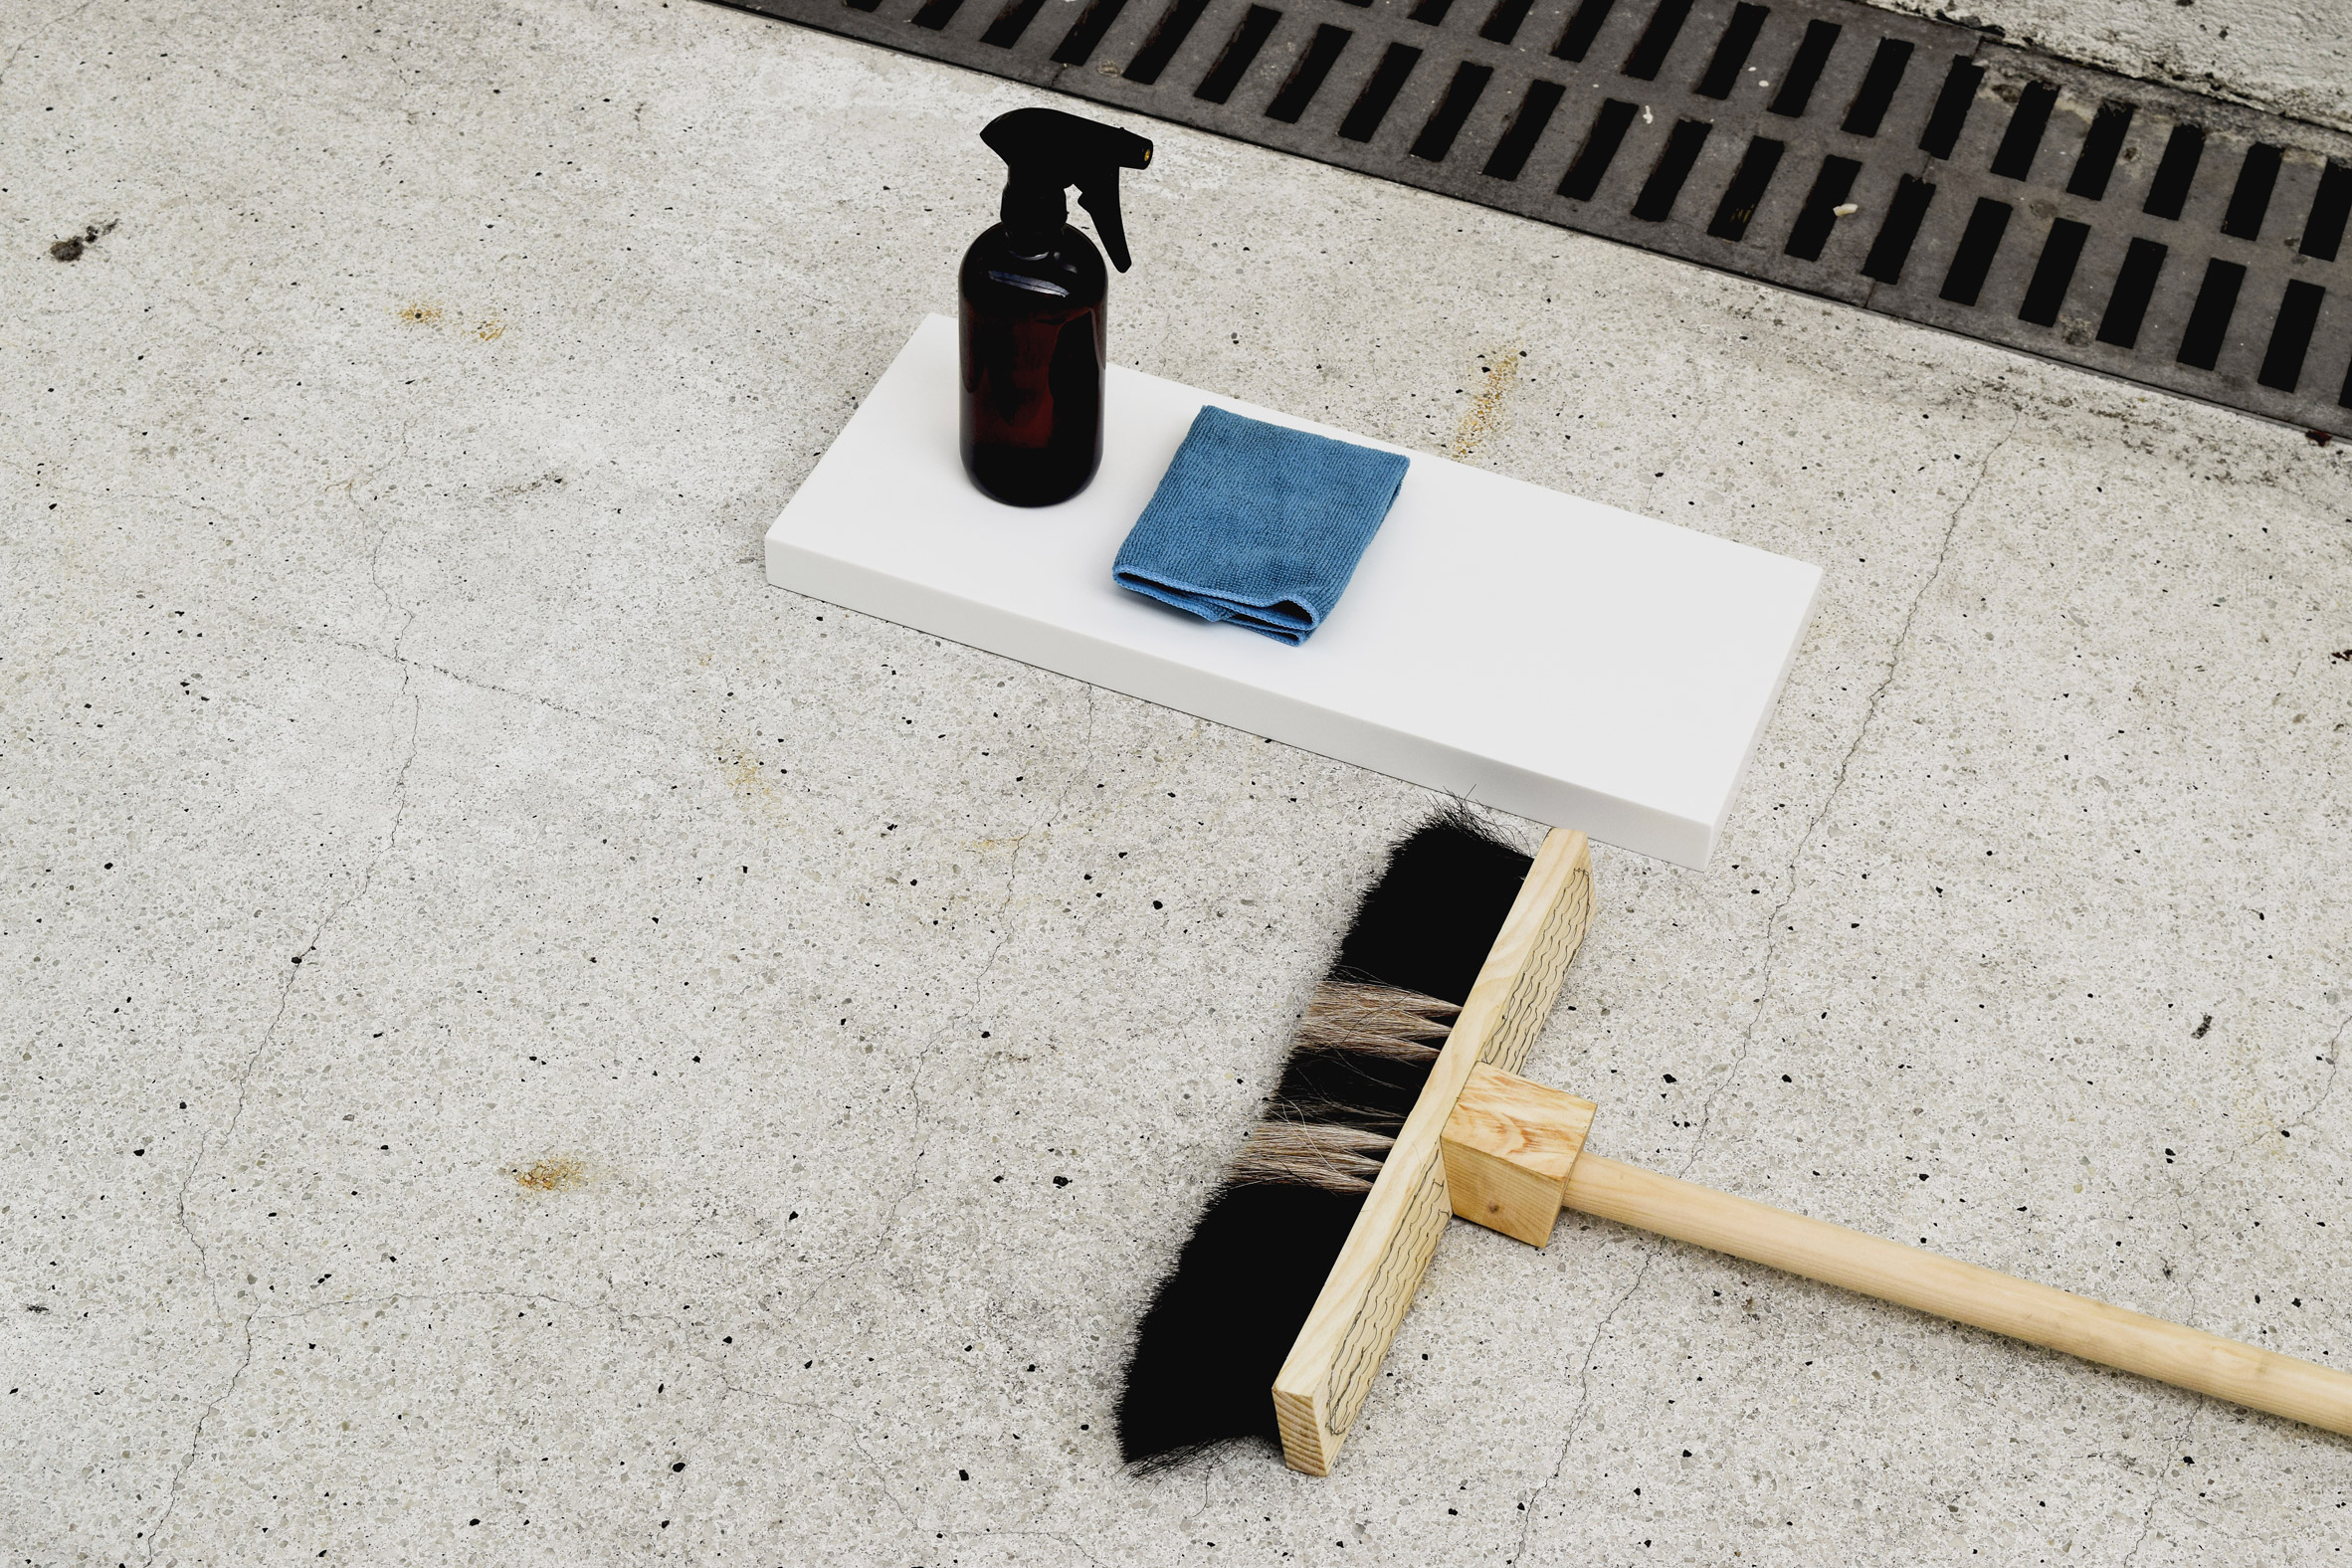 Soley Thrainsdottir creates sustainable cleaning tools using natural waste materials